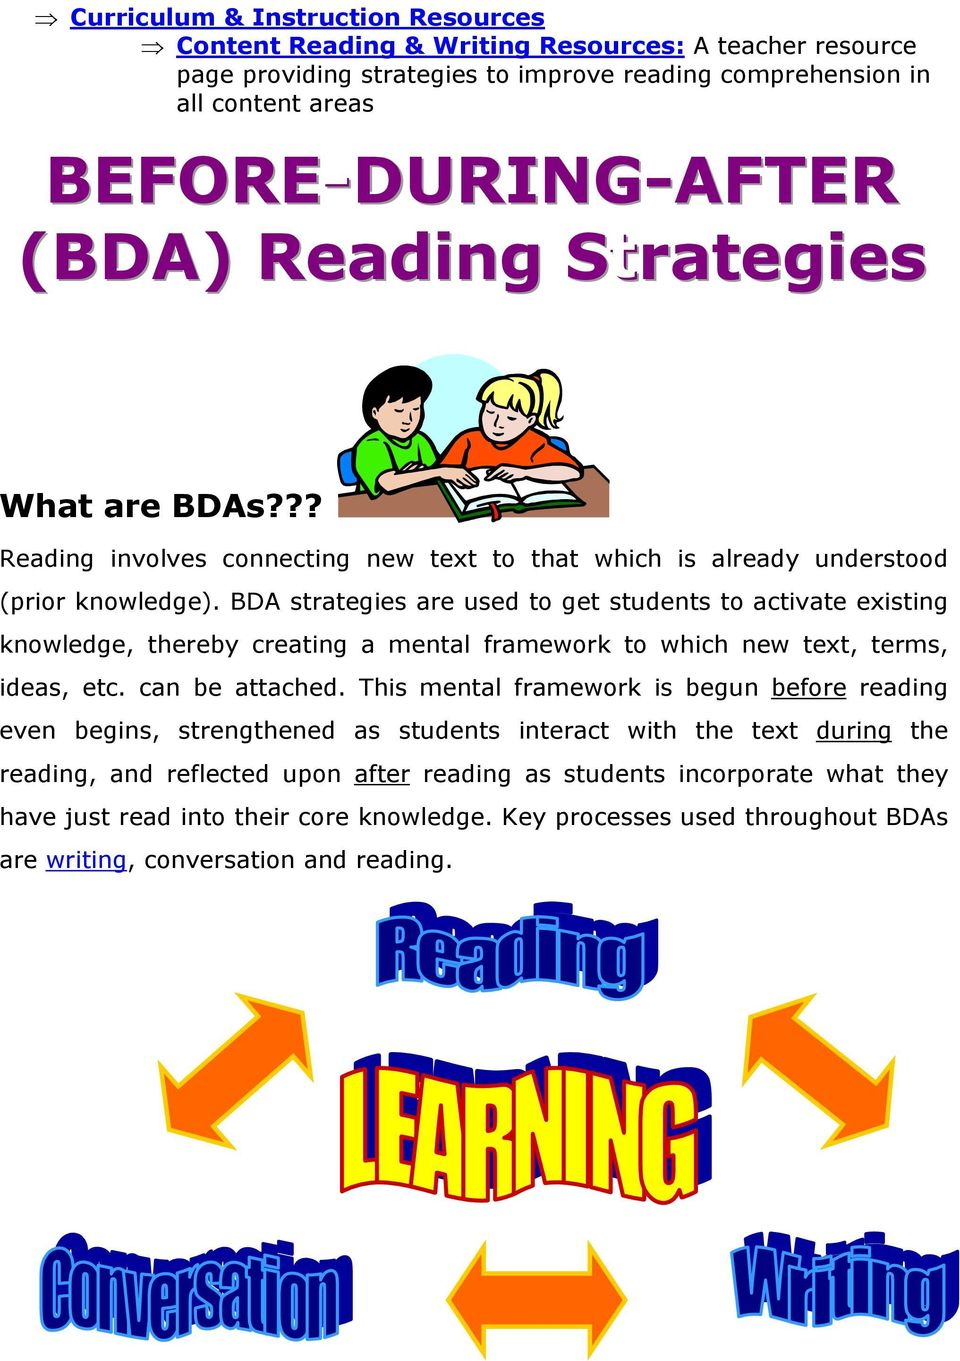 BDA strategies are used to get students to activate existing knowledge, thereby creating a mental framework to which new text, terms, ideas, etc. can be attached.